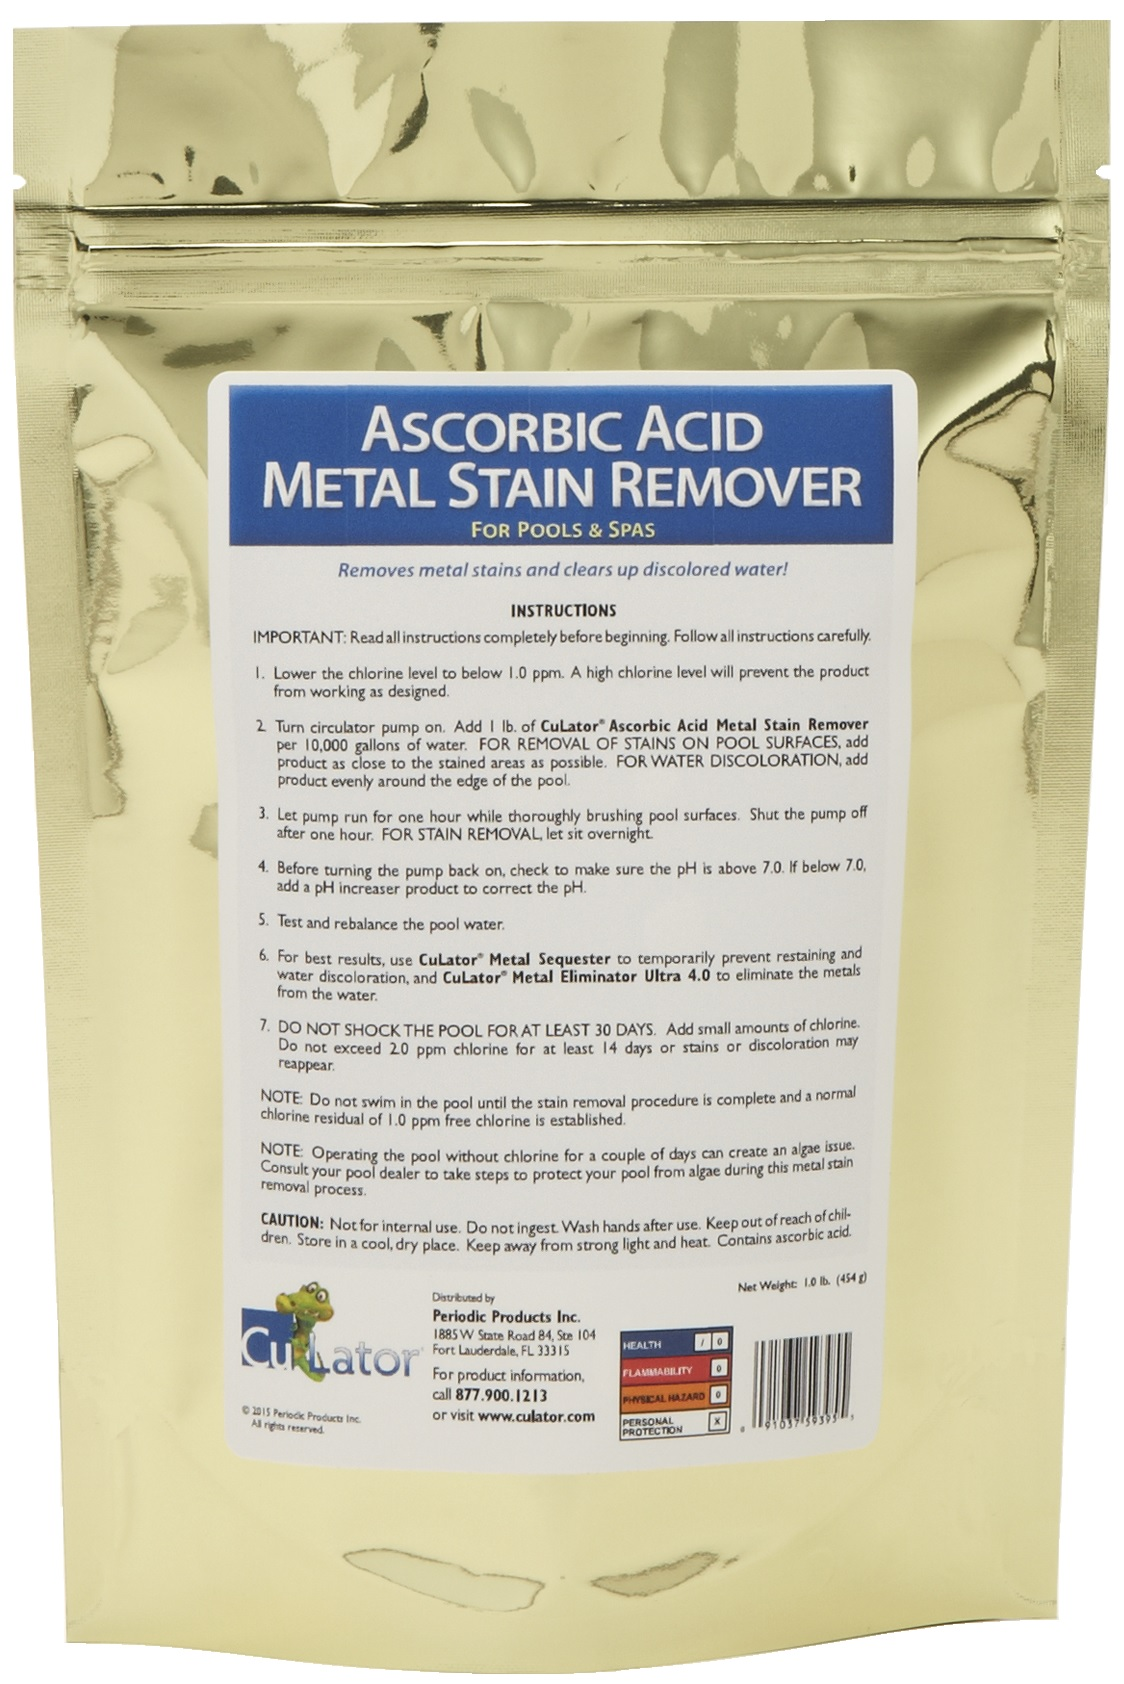 Ascorbic Acid Metal Stain Remover Iron Culator Metal